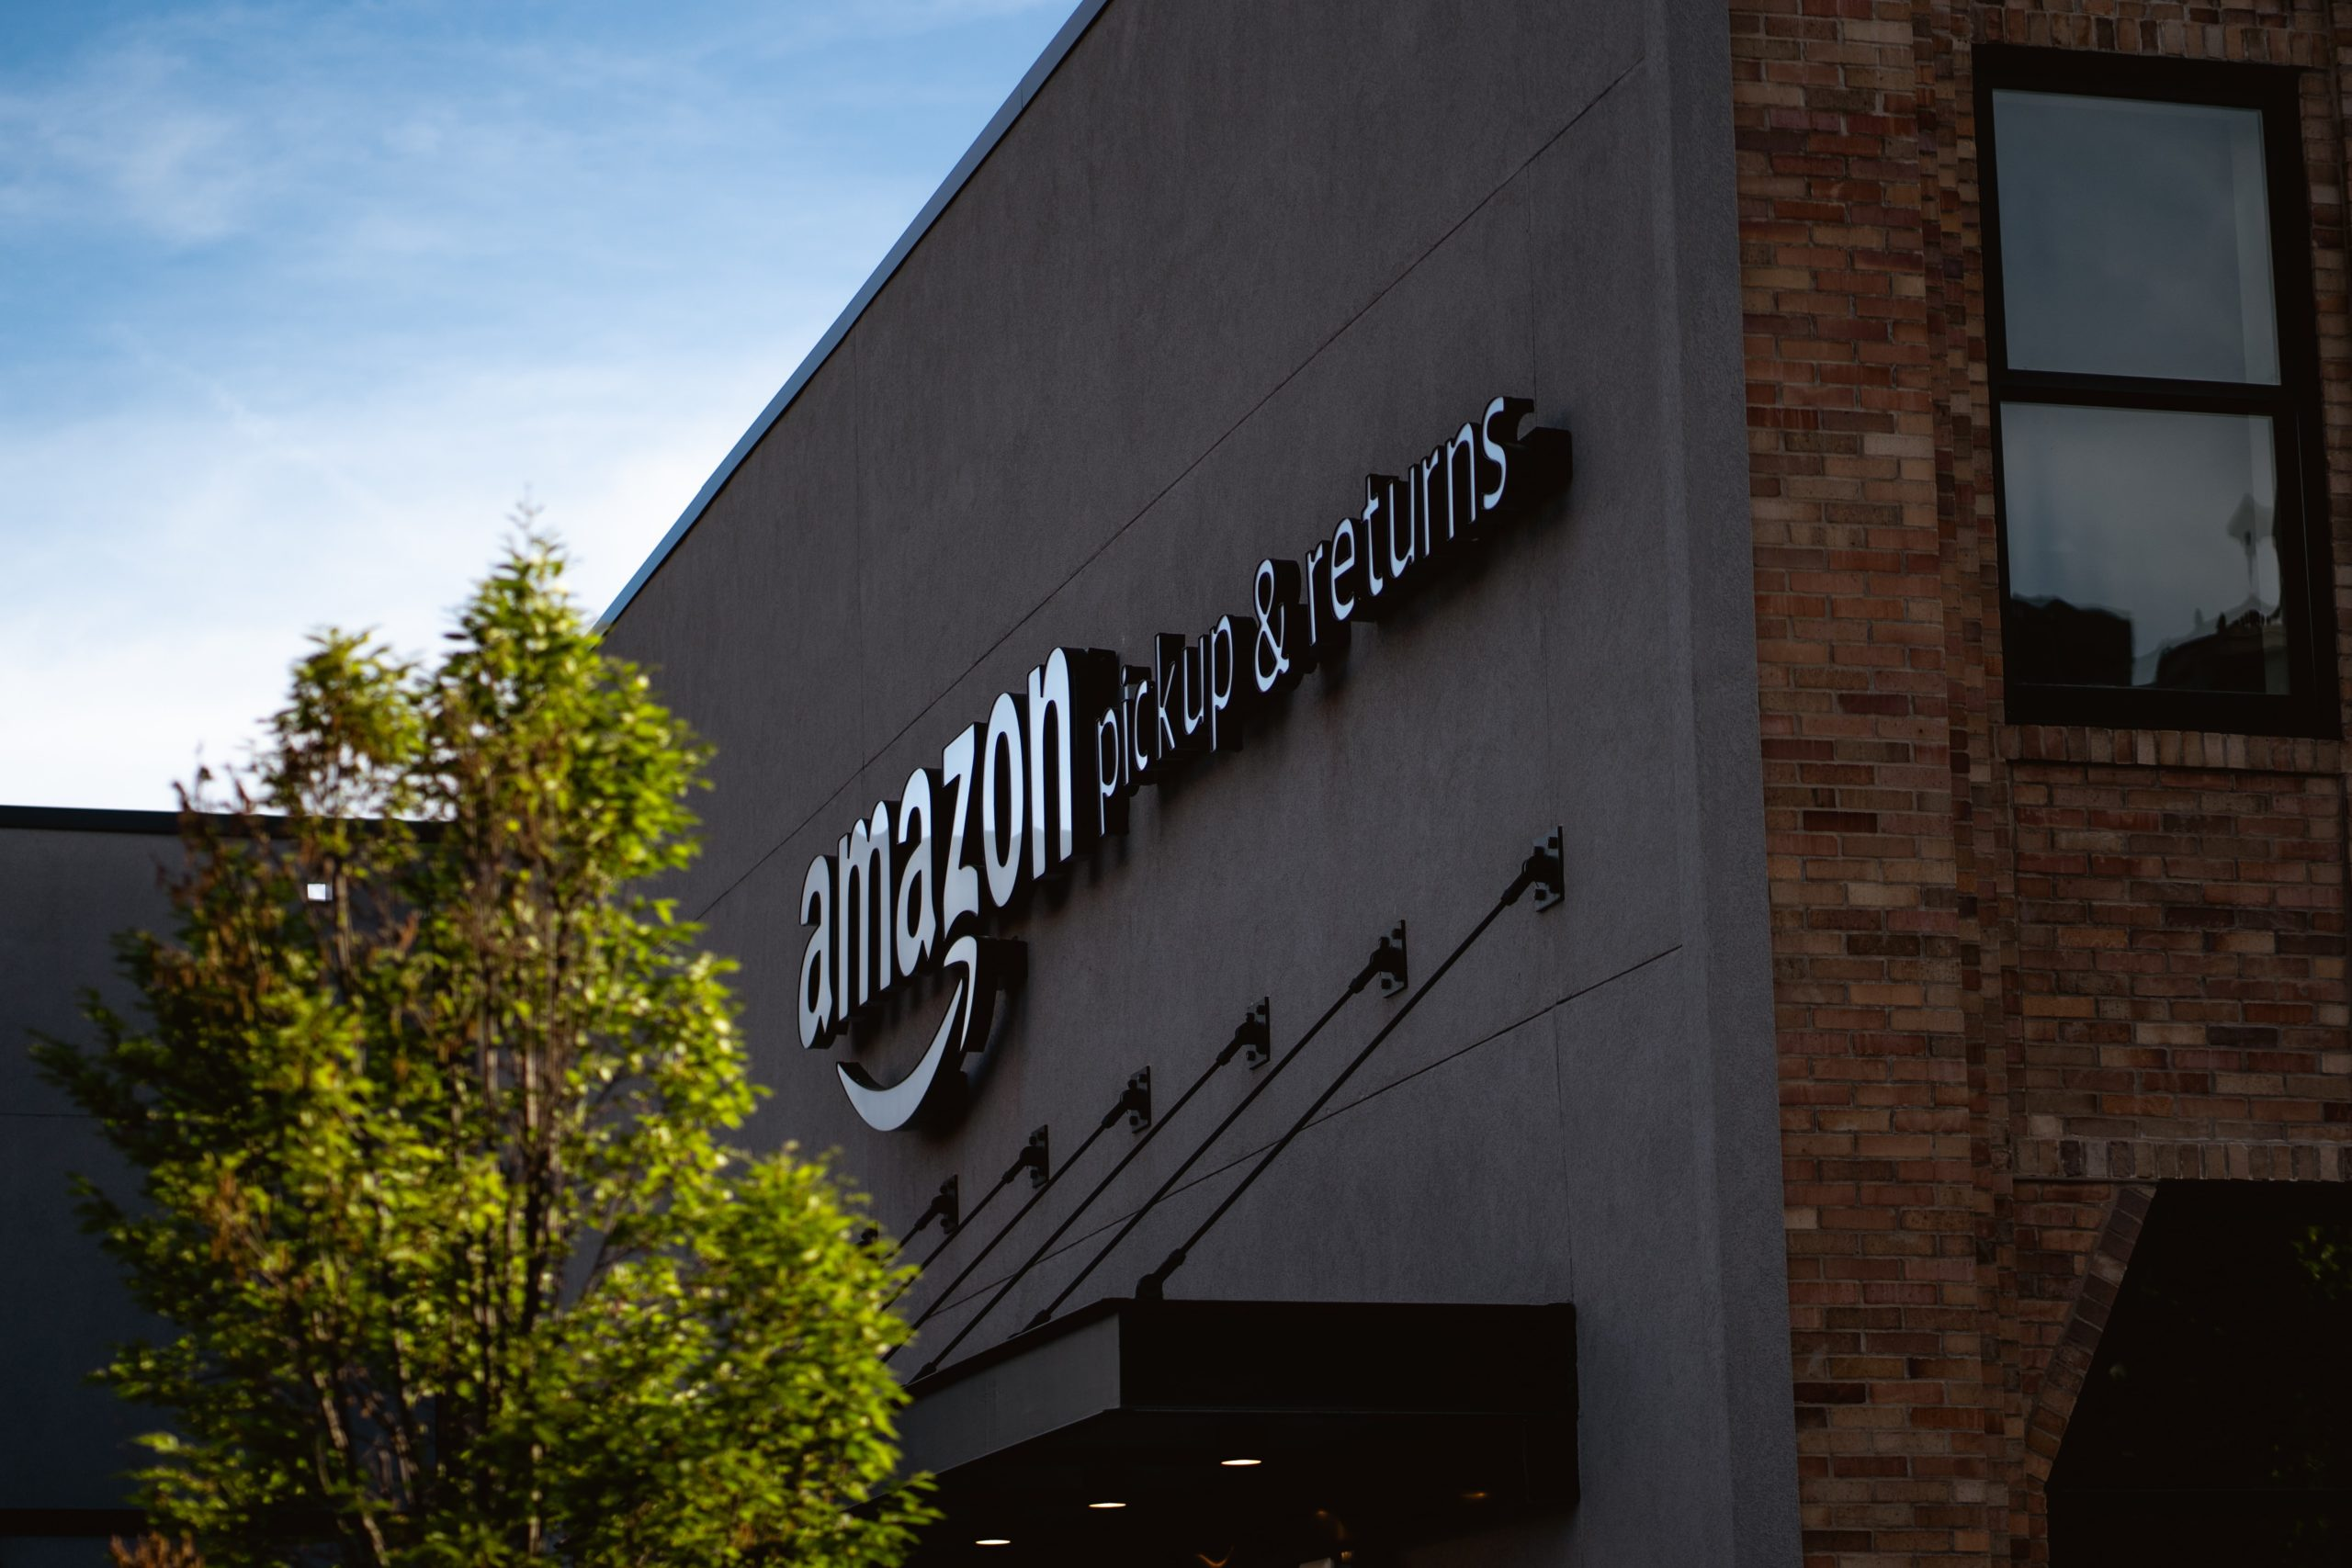 Amazon shipping and returns center